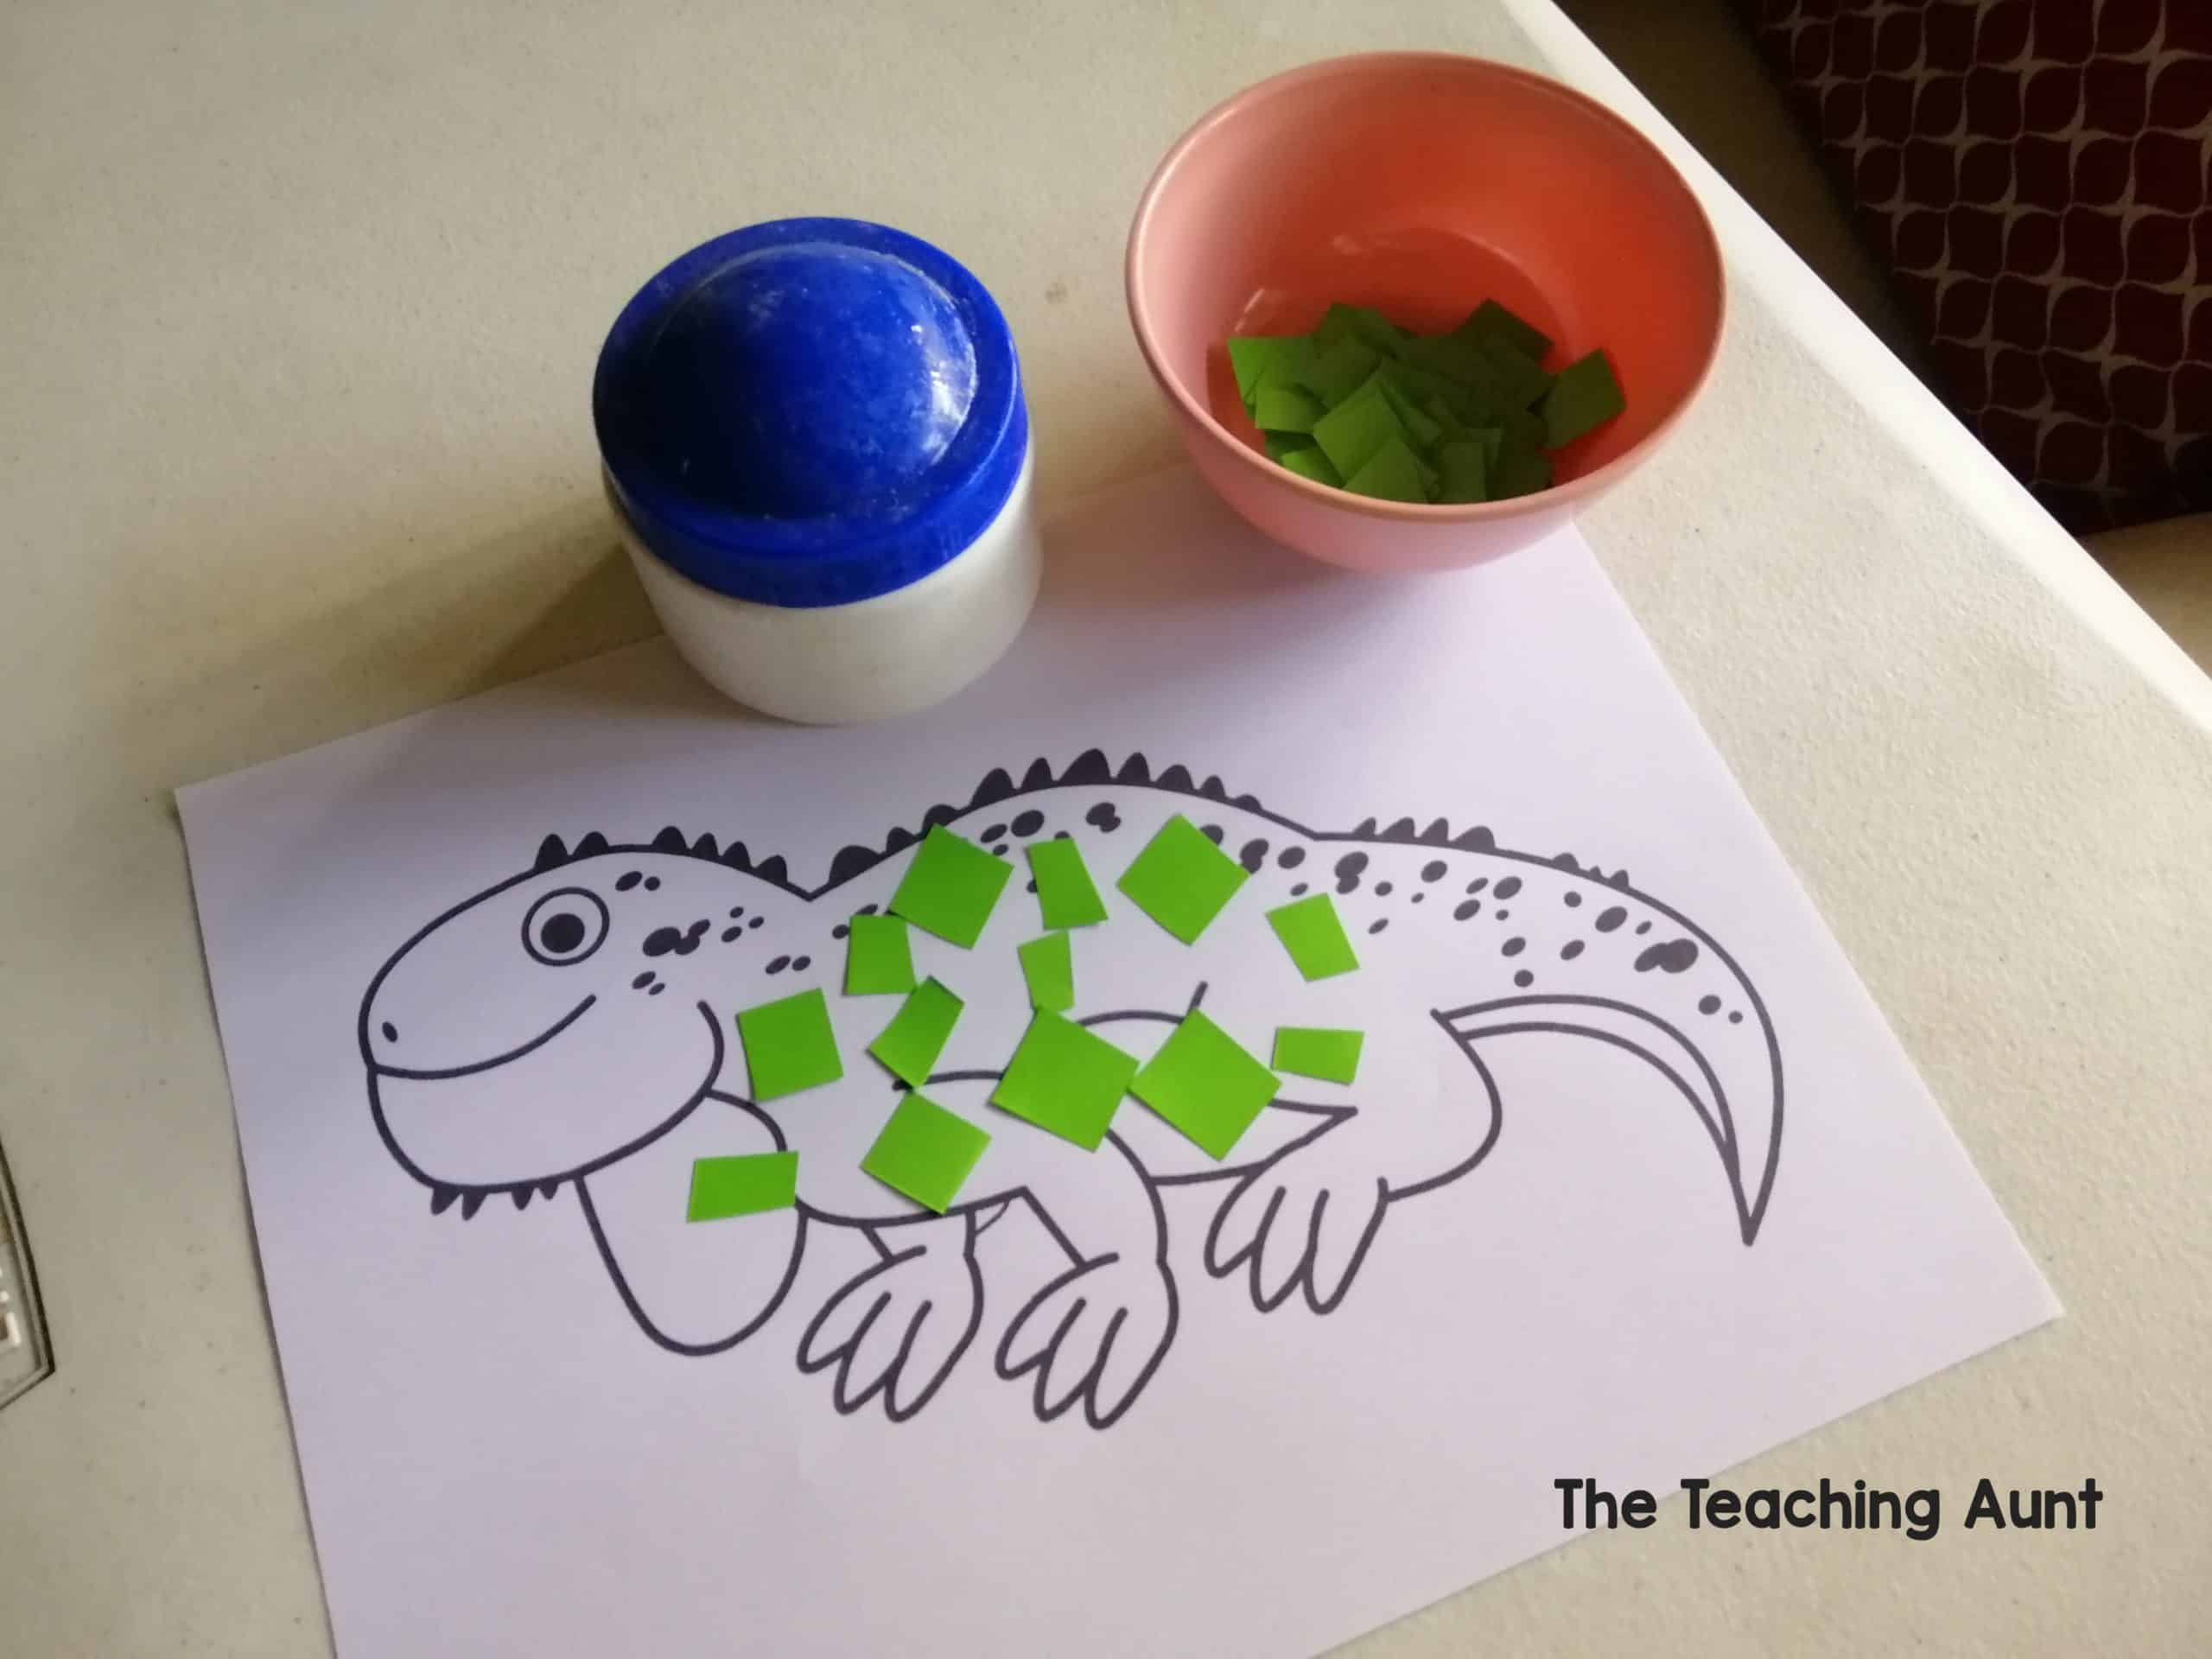 I is for Iguana: Paper Pasting Activity with Free Printable from The Teaching Aunt